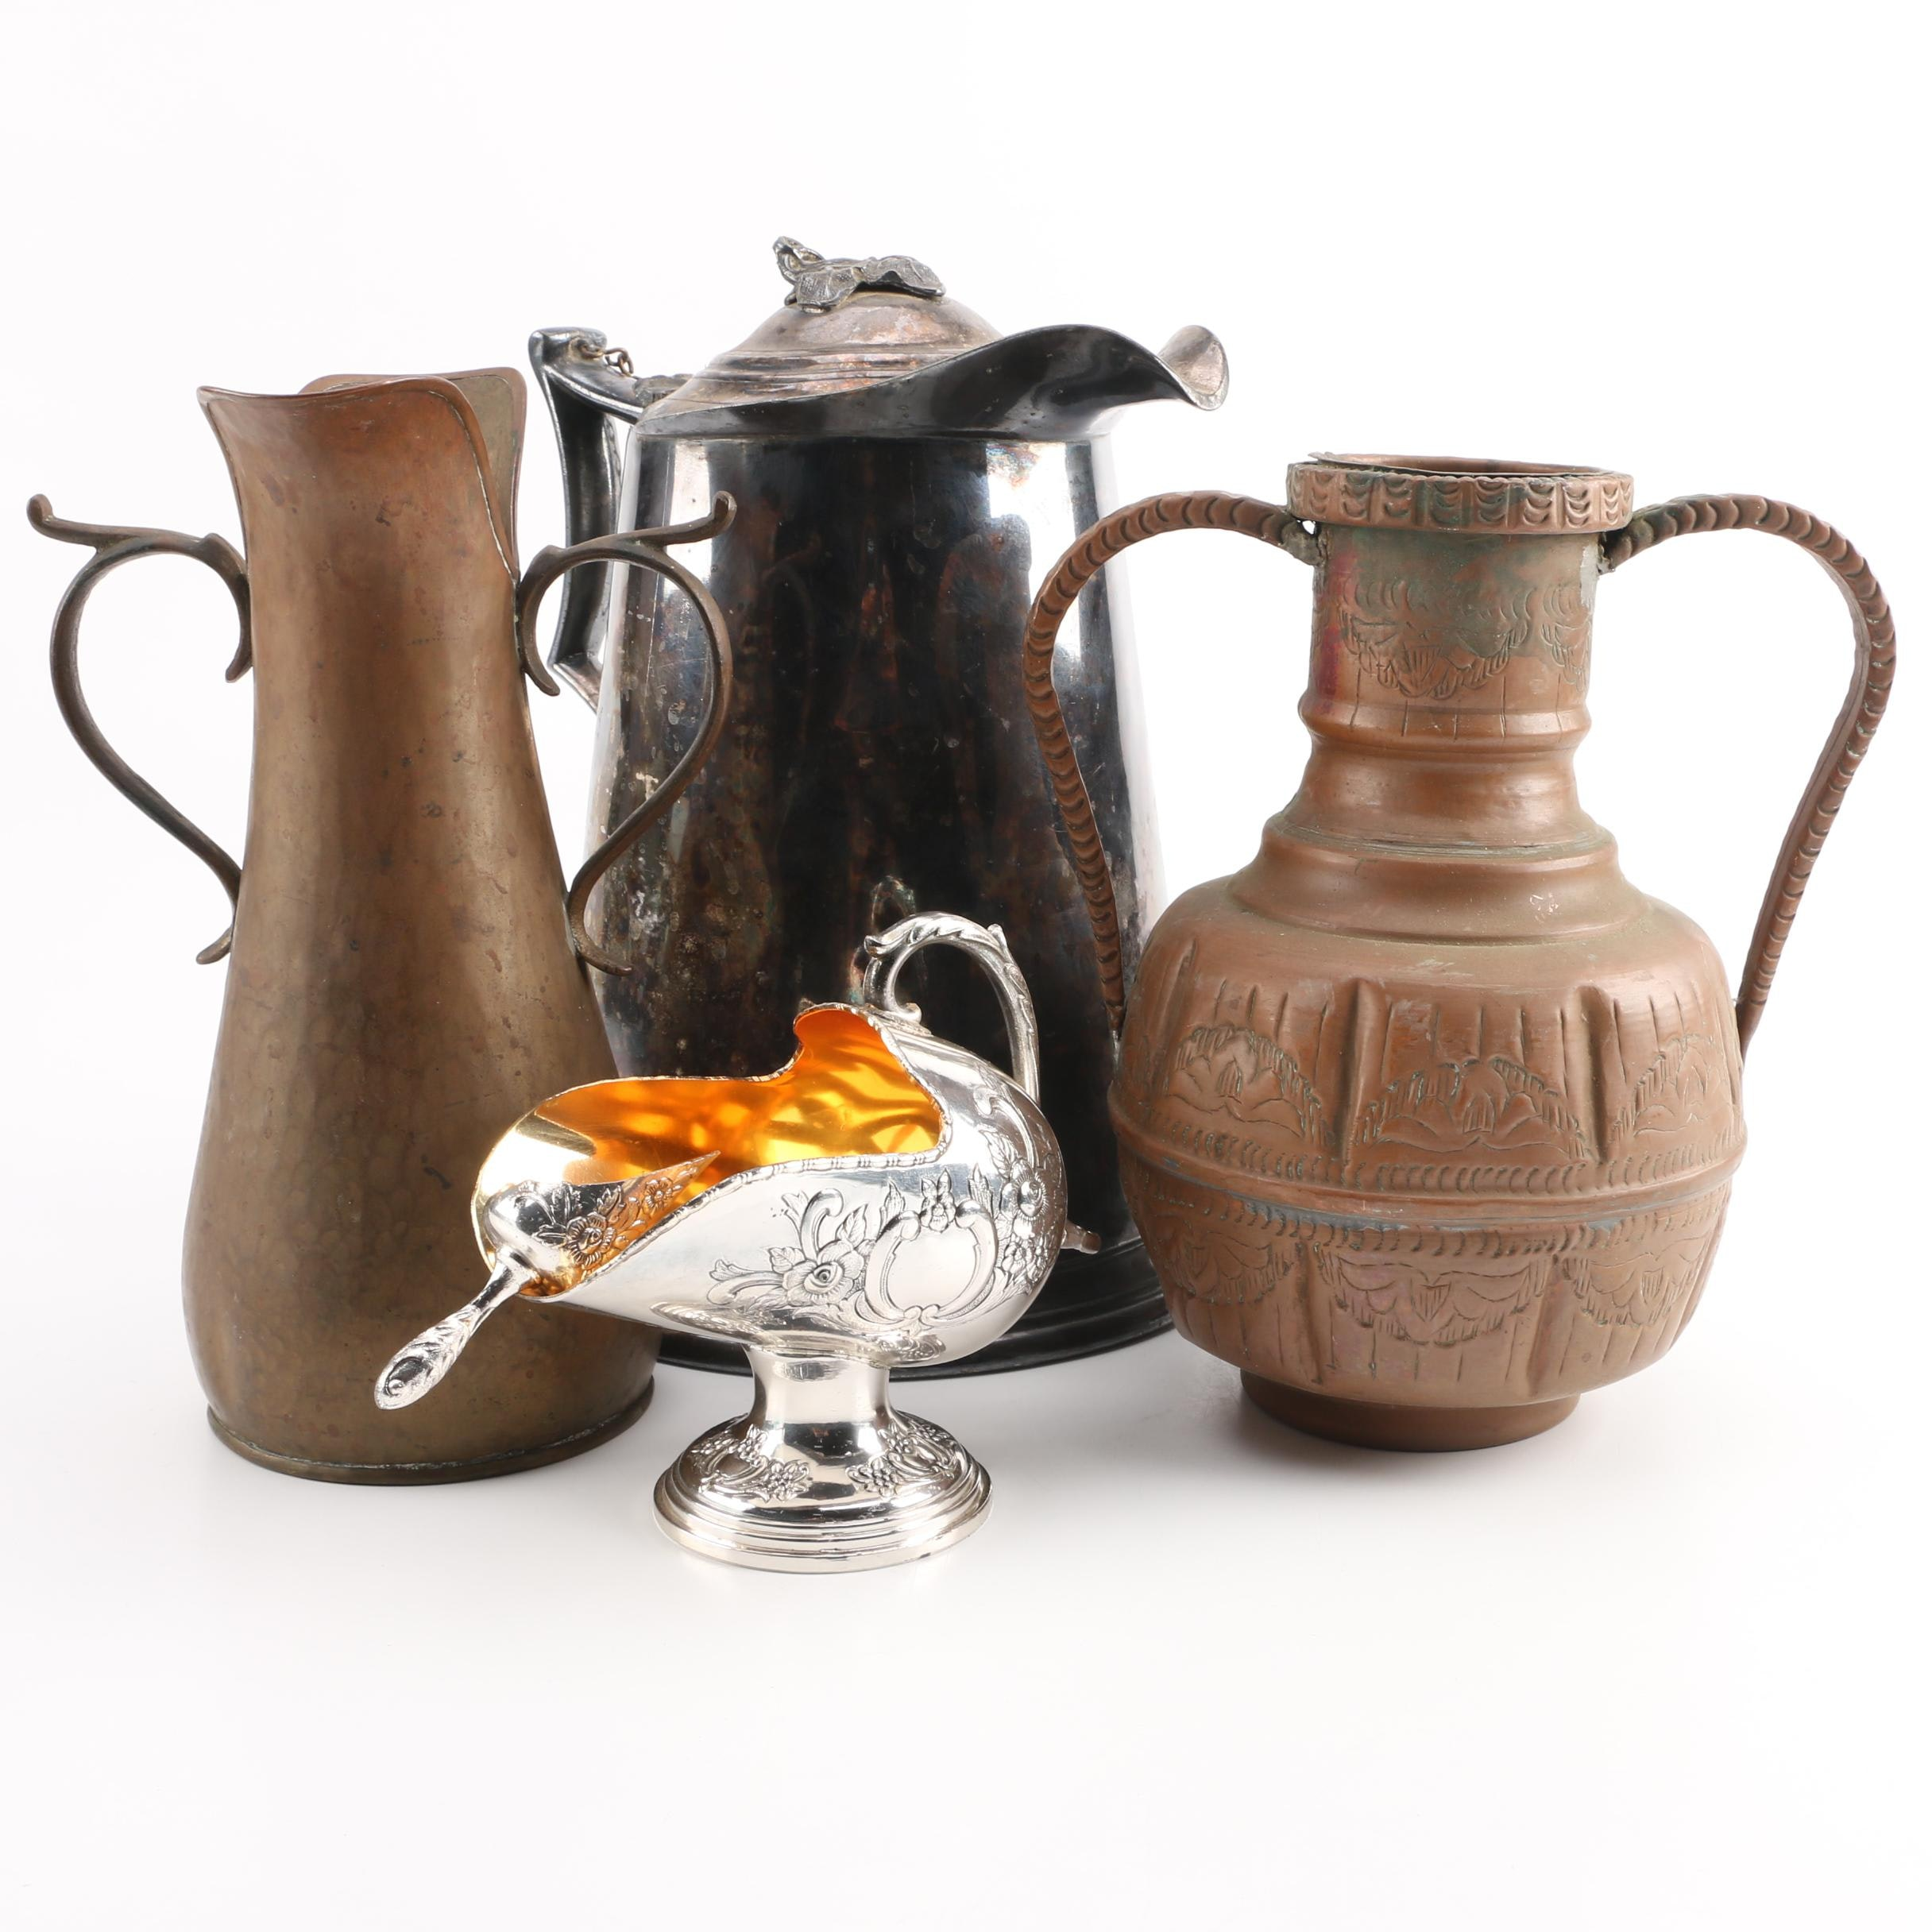 Antique James Stimpson Pitcher with Silver Plate, Brass and Copper Serveware